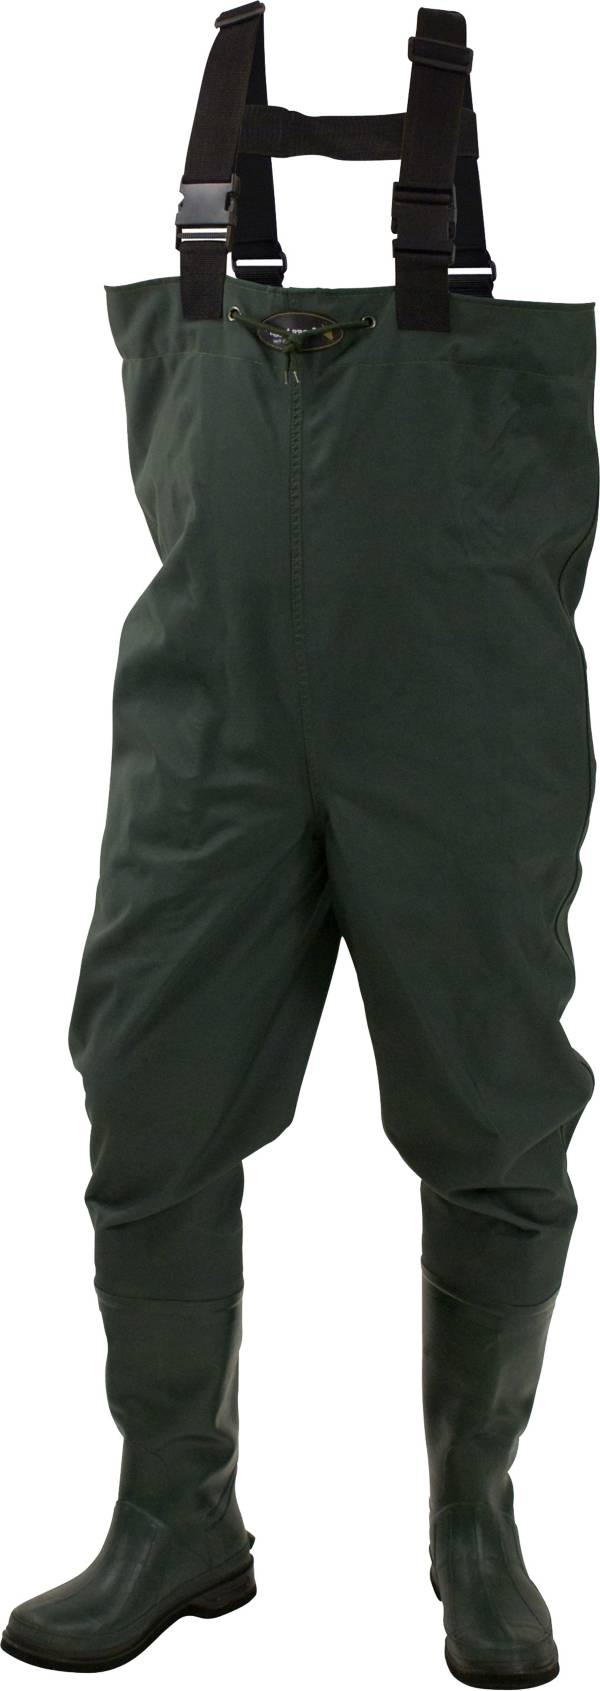 frogg toggs Cascades Poly/Rubber Chest Waders product image